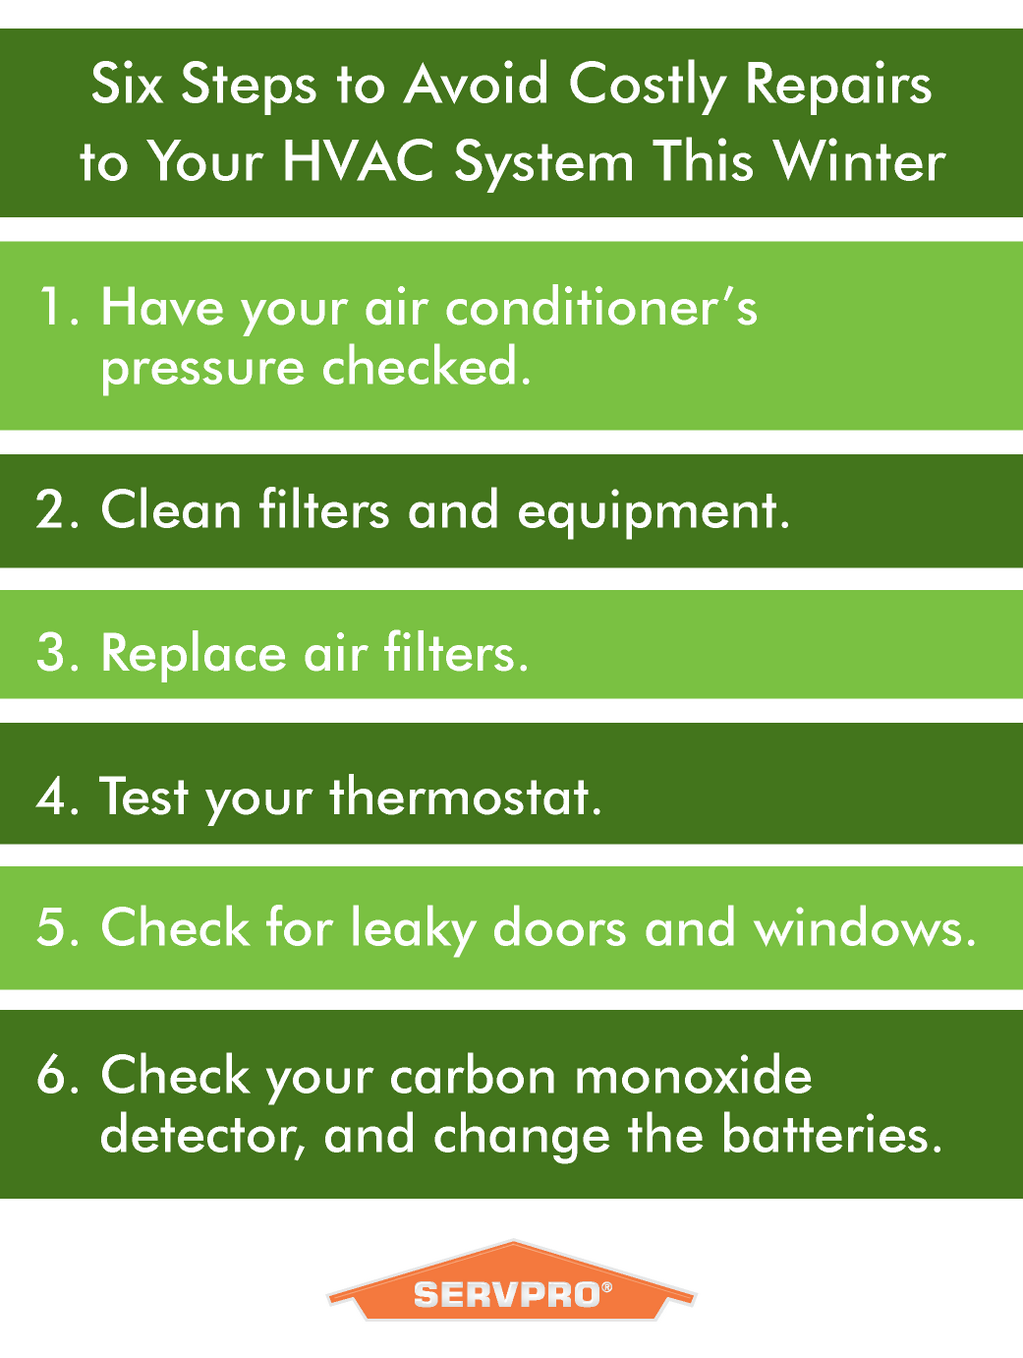 Servpro Via Servpro9650 Colder Weather Is Coming Follow This